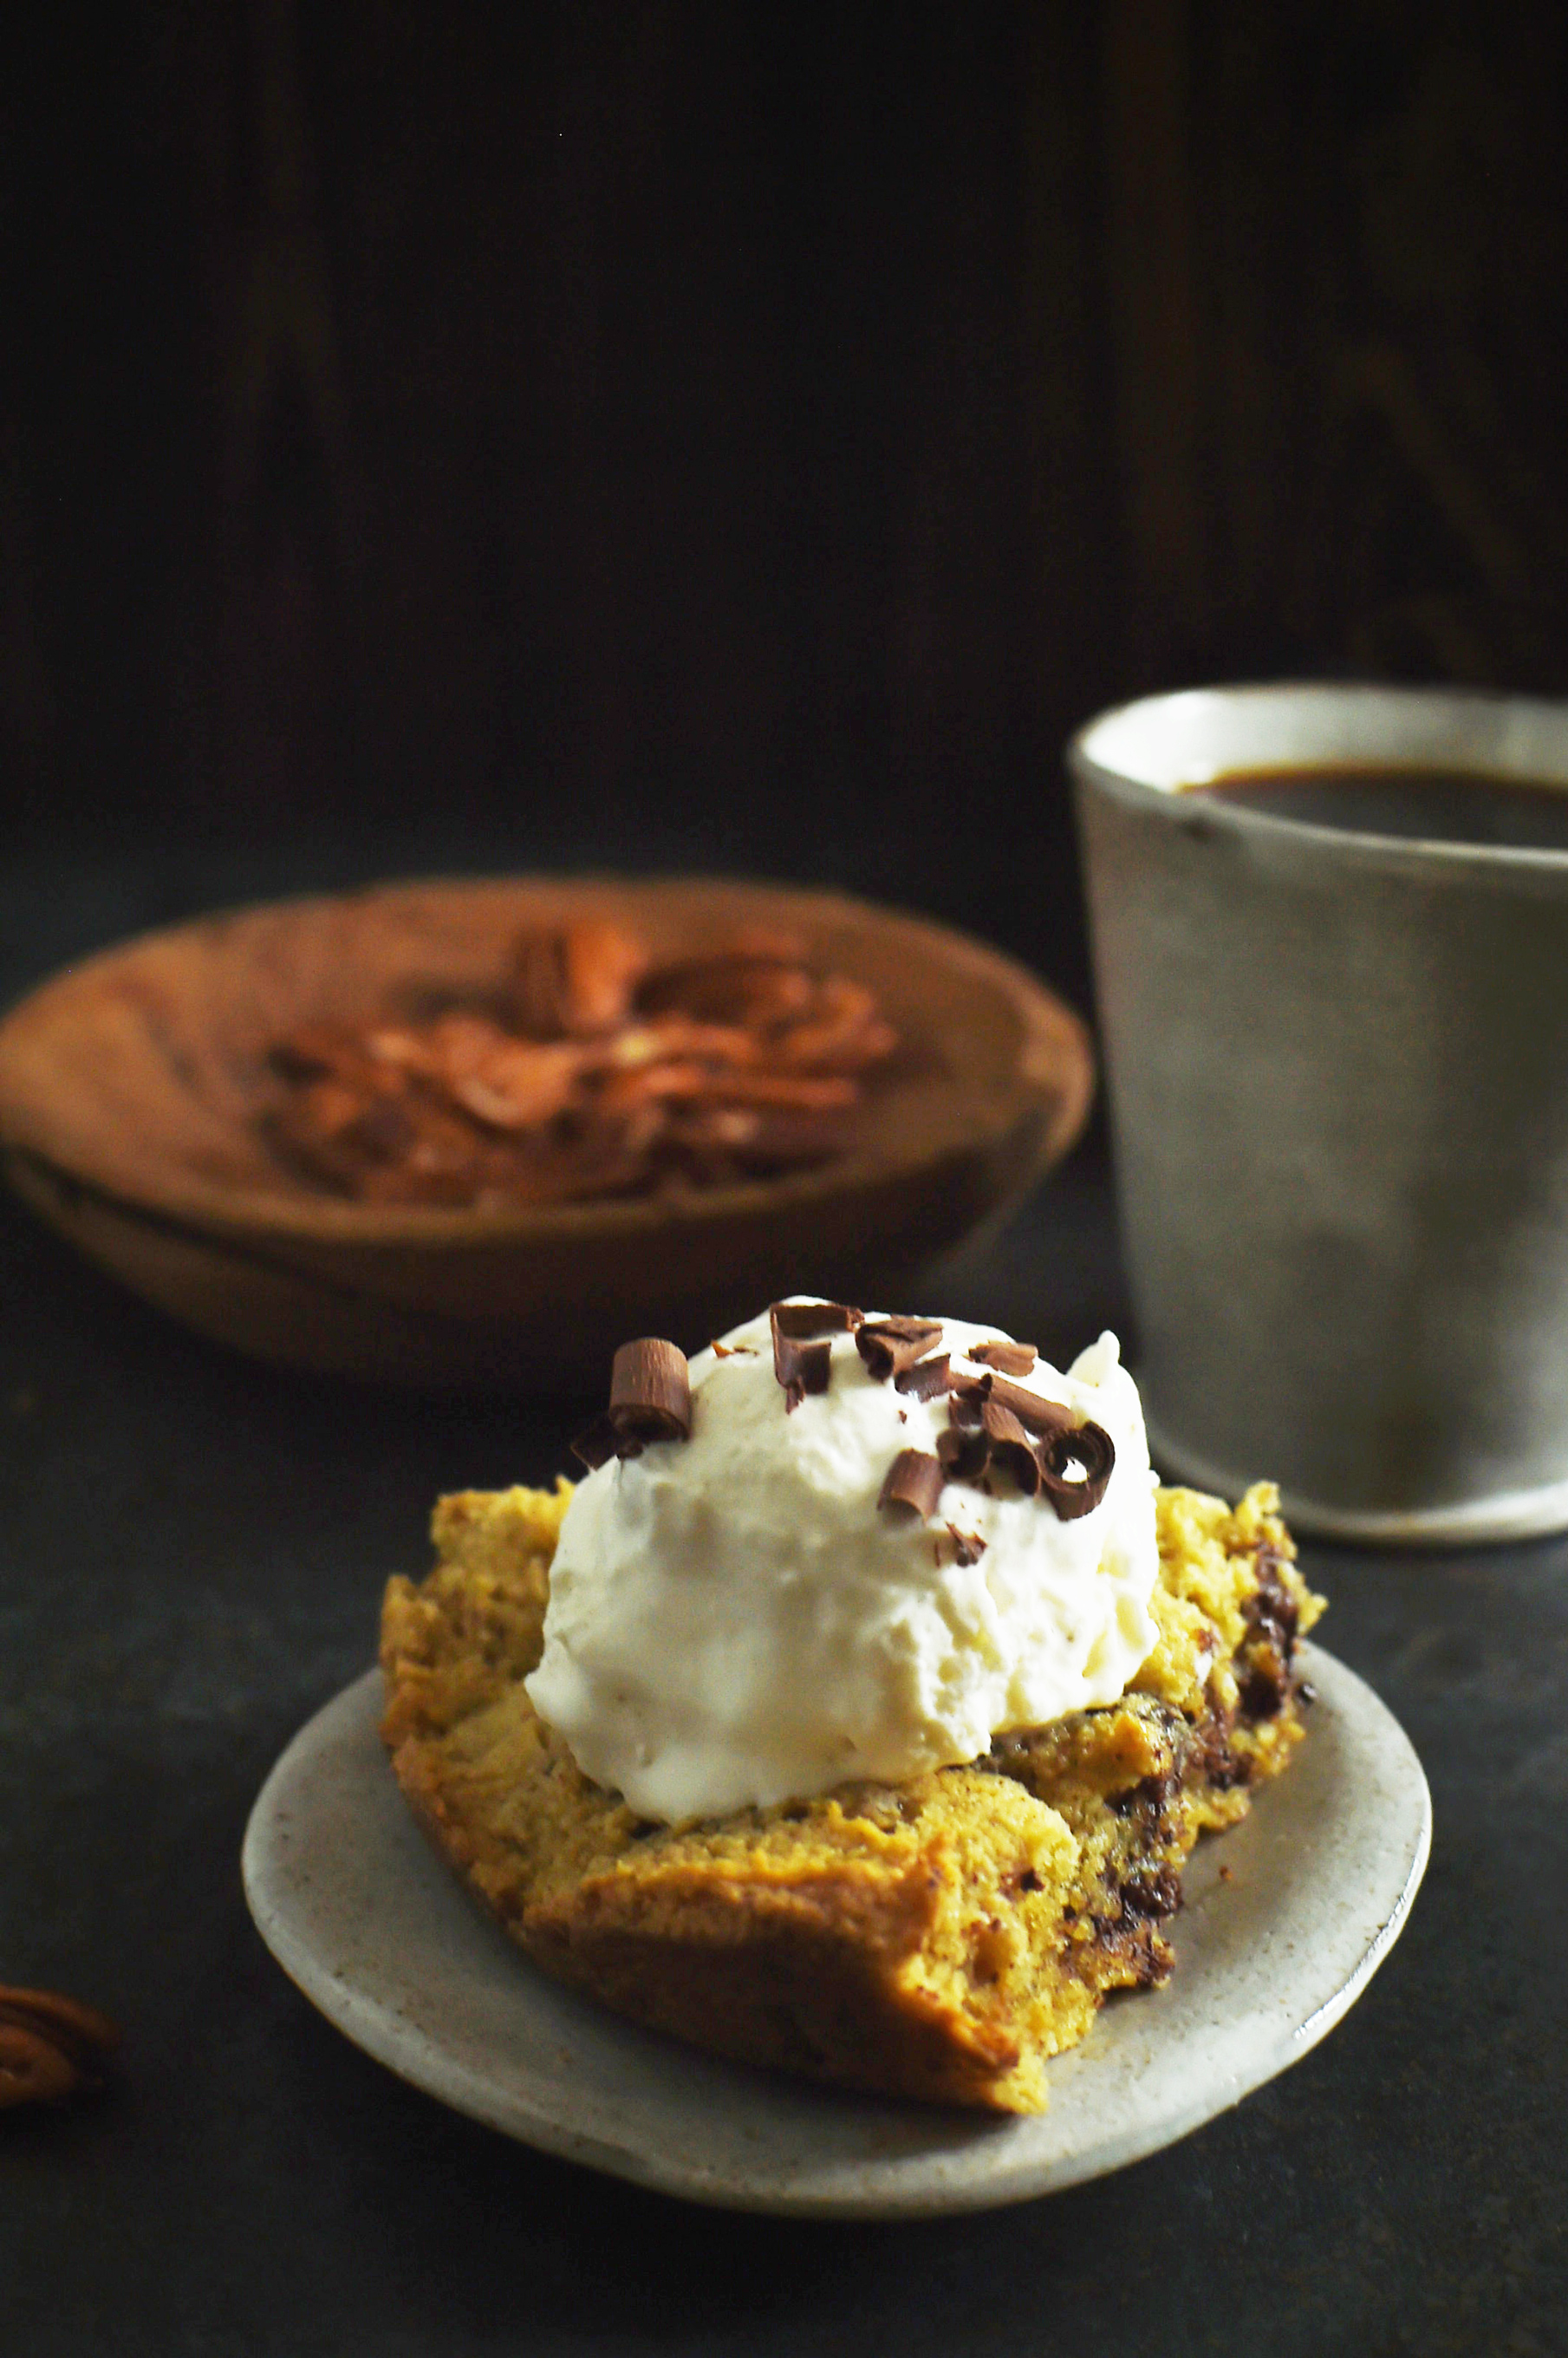 Low-Carb Skillet Chocolate Chip Cookie Recipe-A since served up with ice cream and coffee.